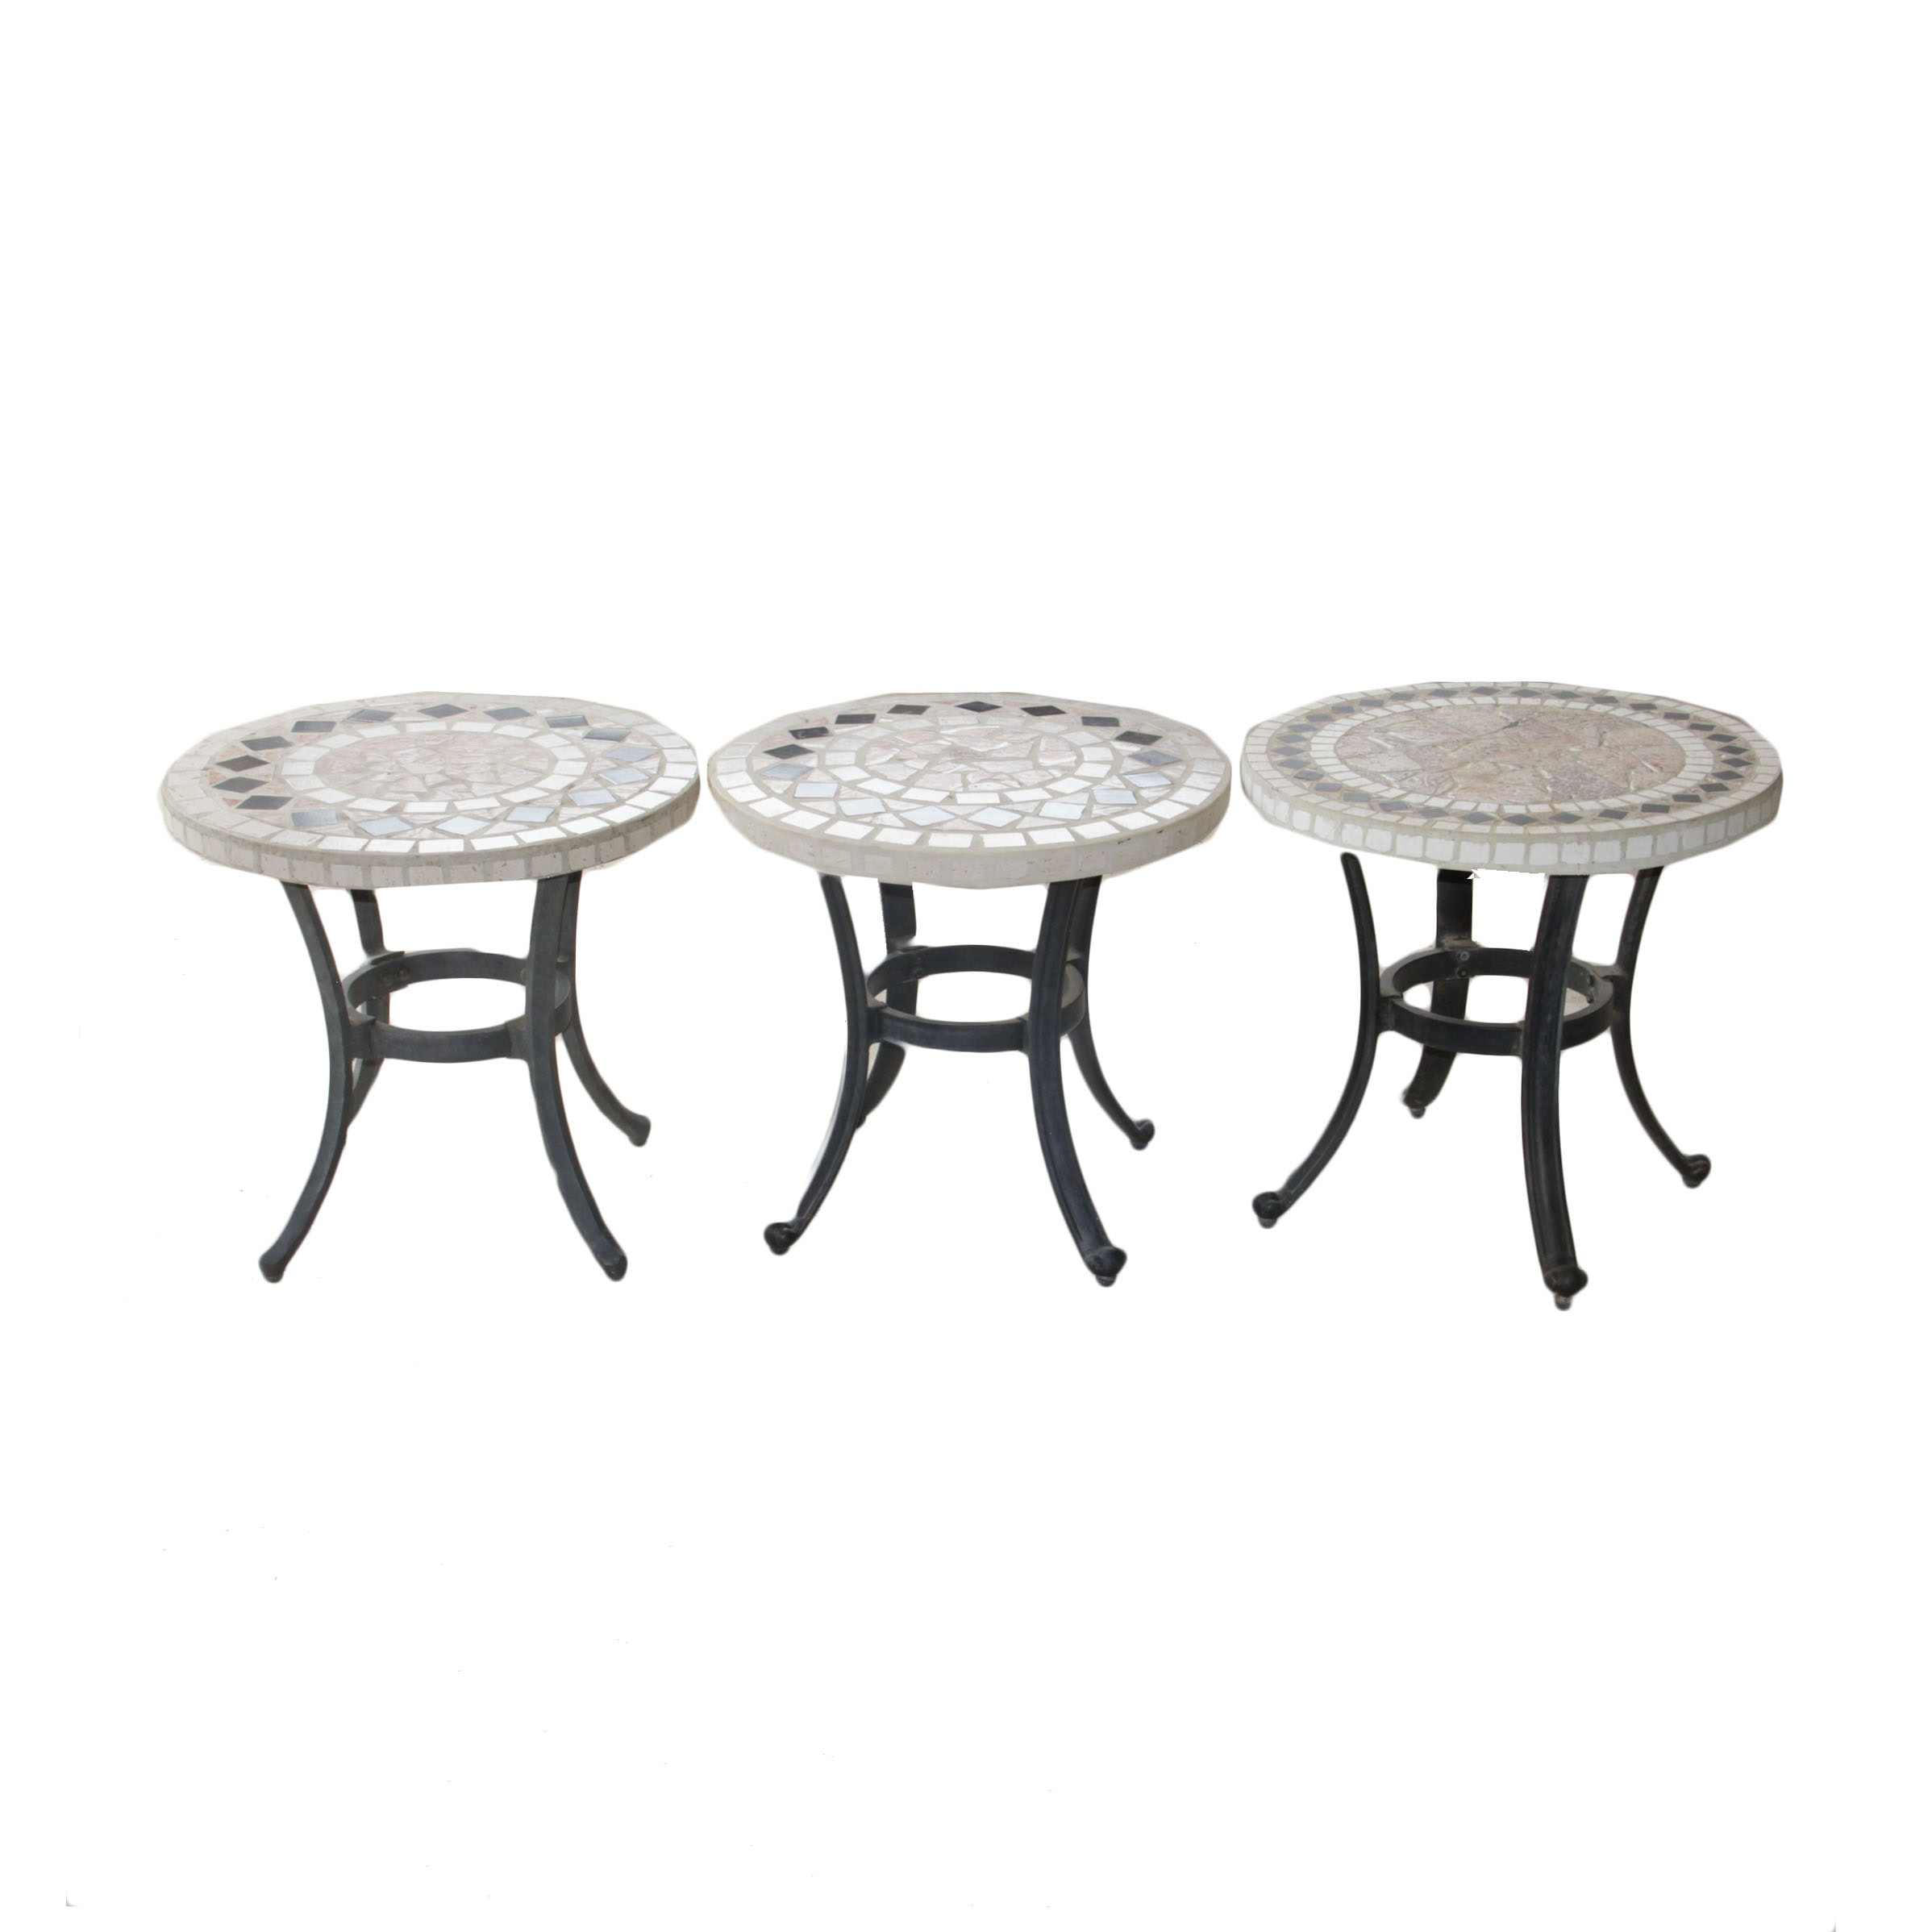 Trio of Mosaic Outdoor End Tables